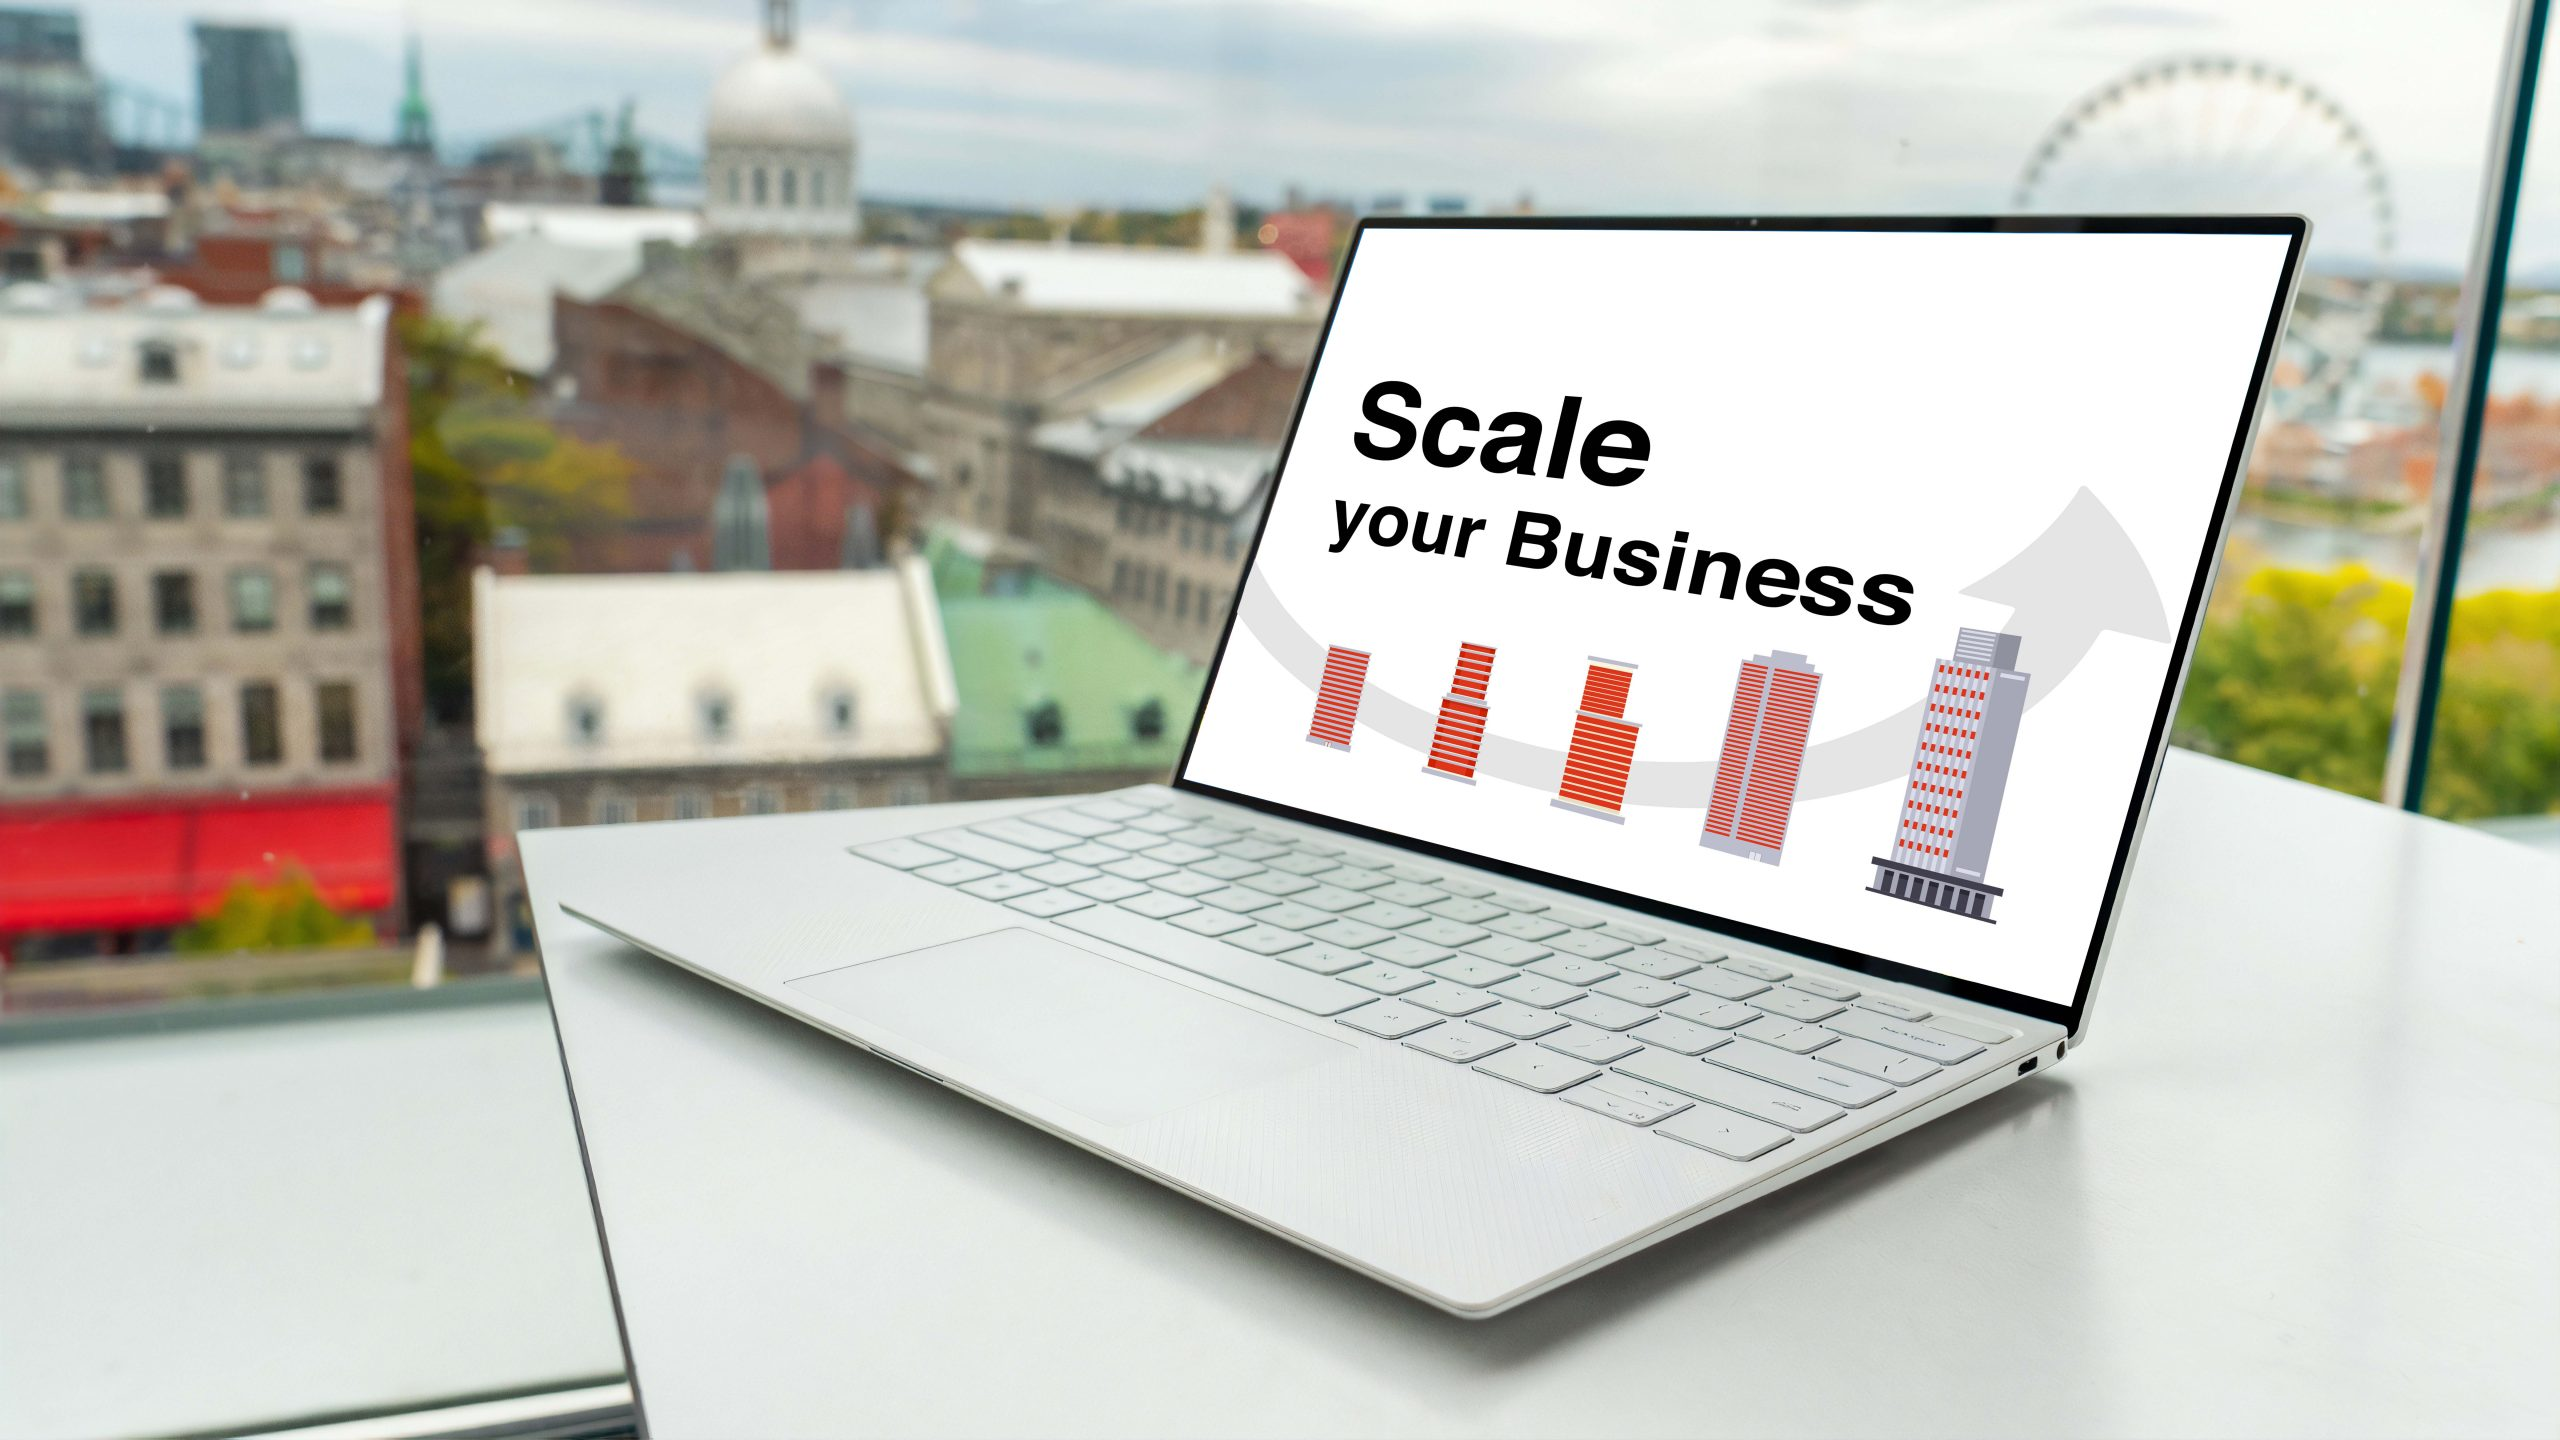 Scaling business